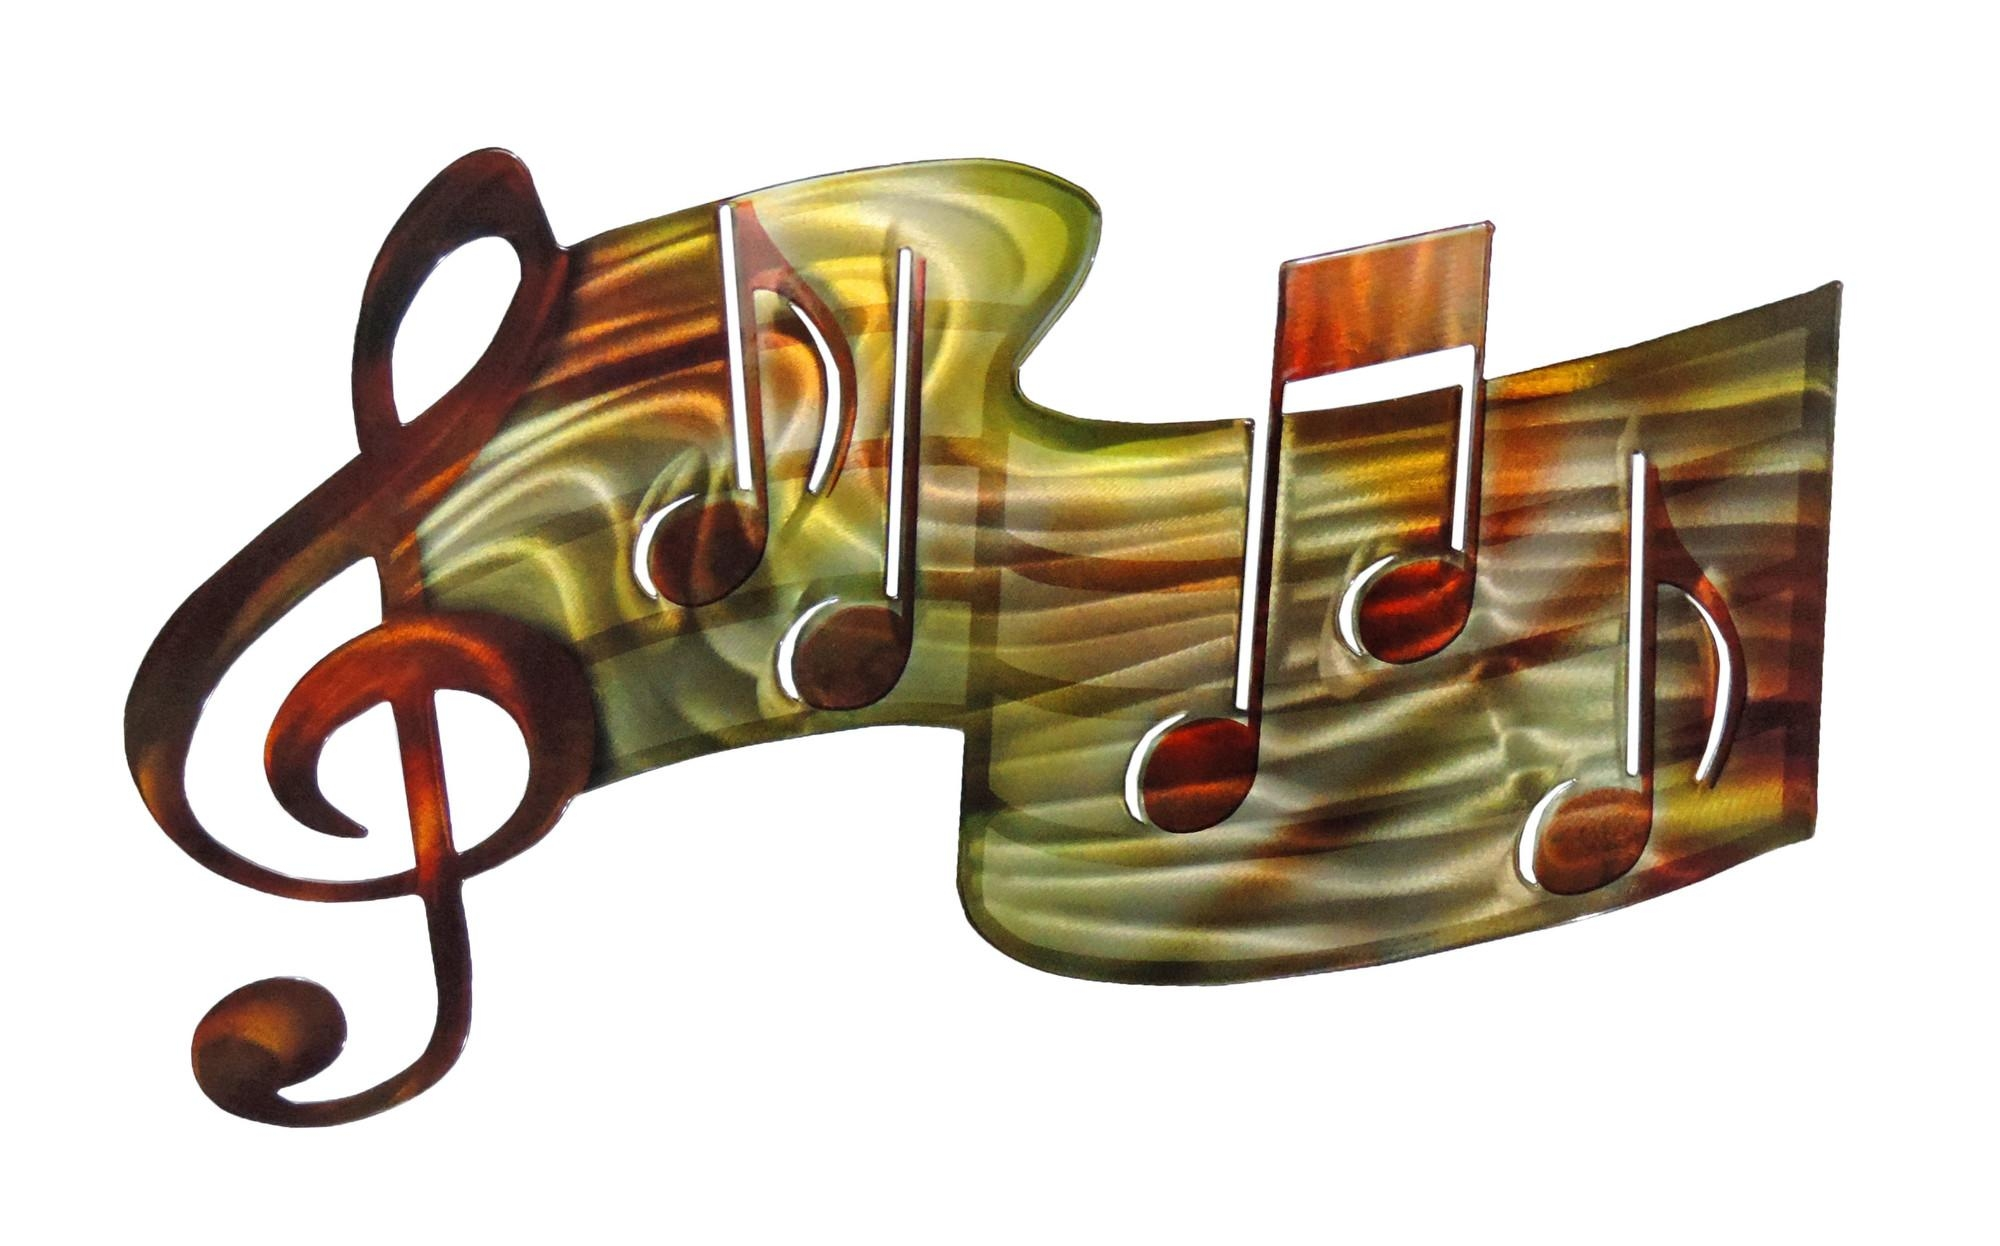 3D Music Staff – Musical Metal Wall Art Intended For Music Metal Wall Art (View 3 of 20)